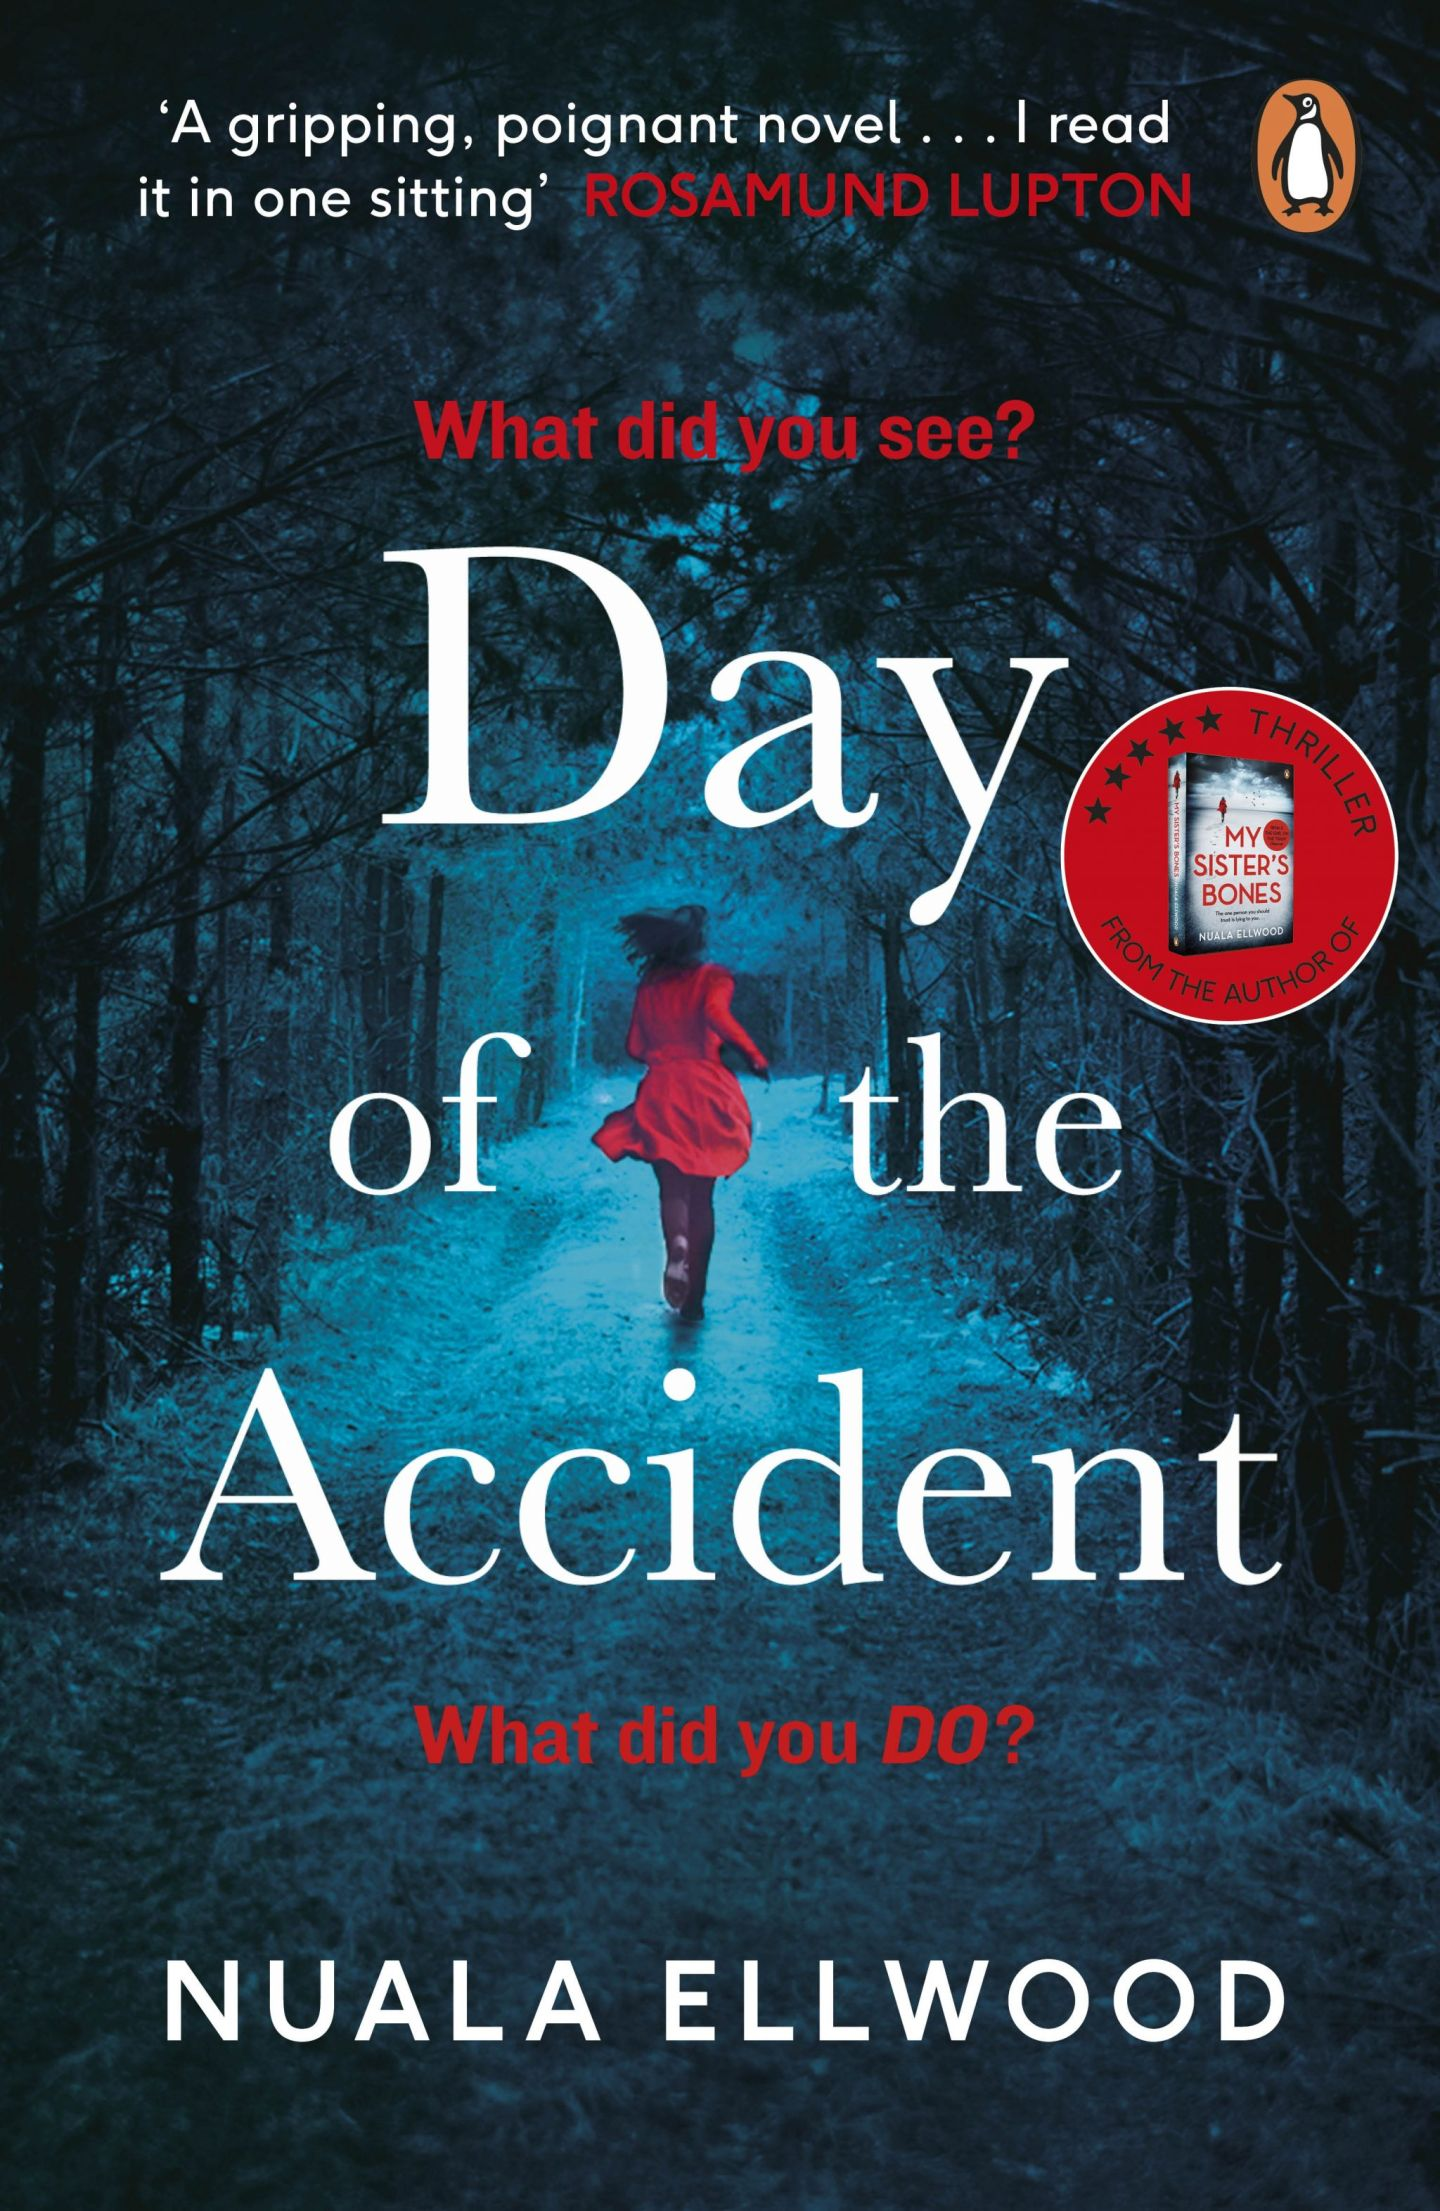 Day of the Accident by Nuala Ellwood | Book review by Hollie in Wanderlust | Book Blogger